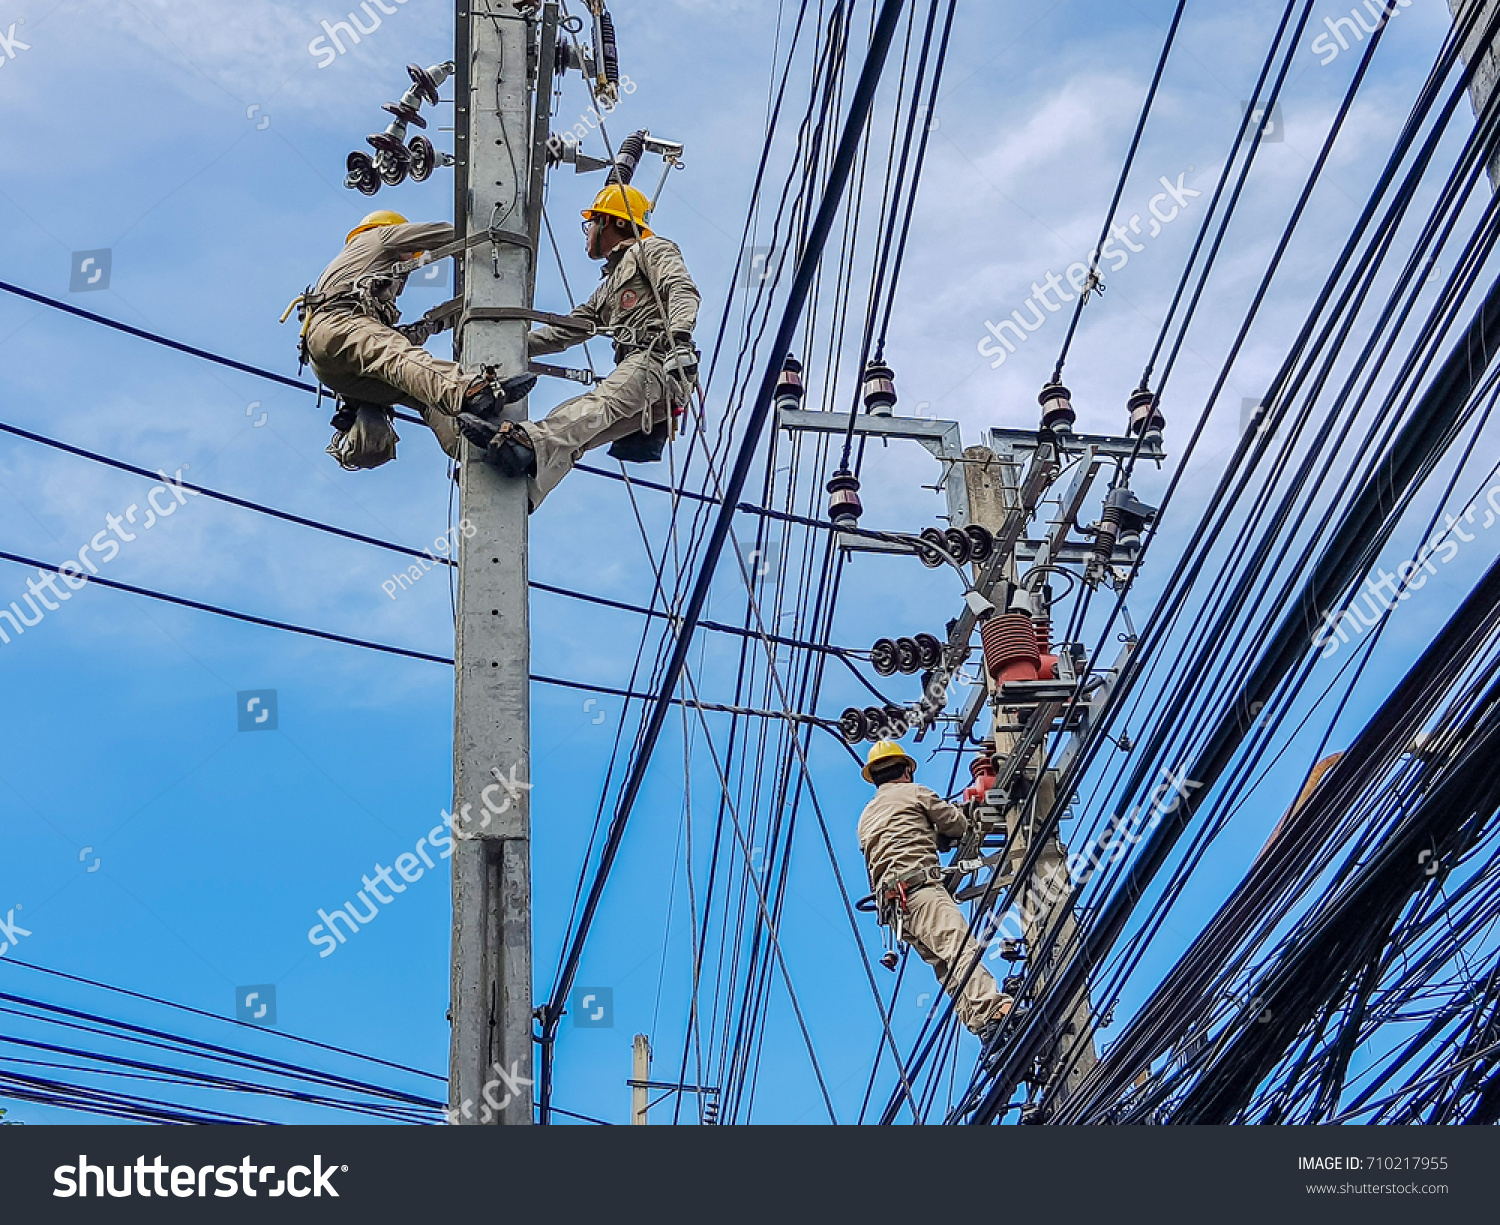 Electrical power-line installers and repairers Electrical power-line installers and repairers new photo